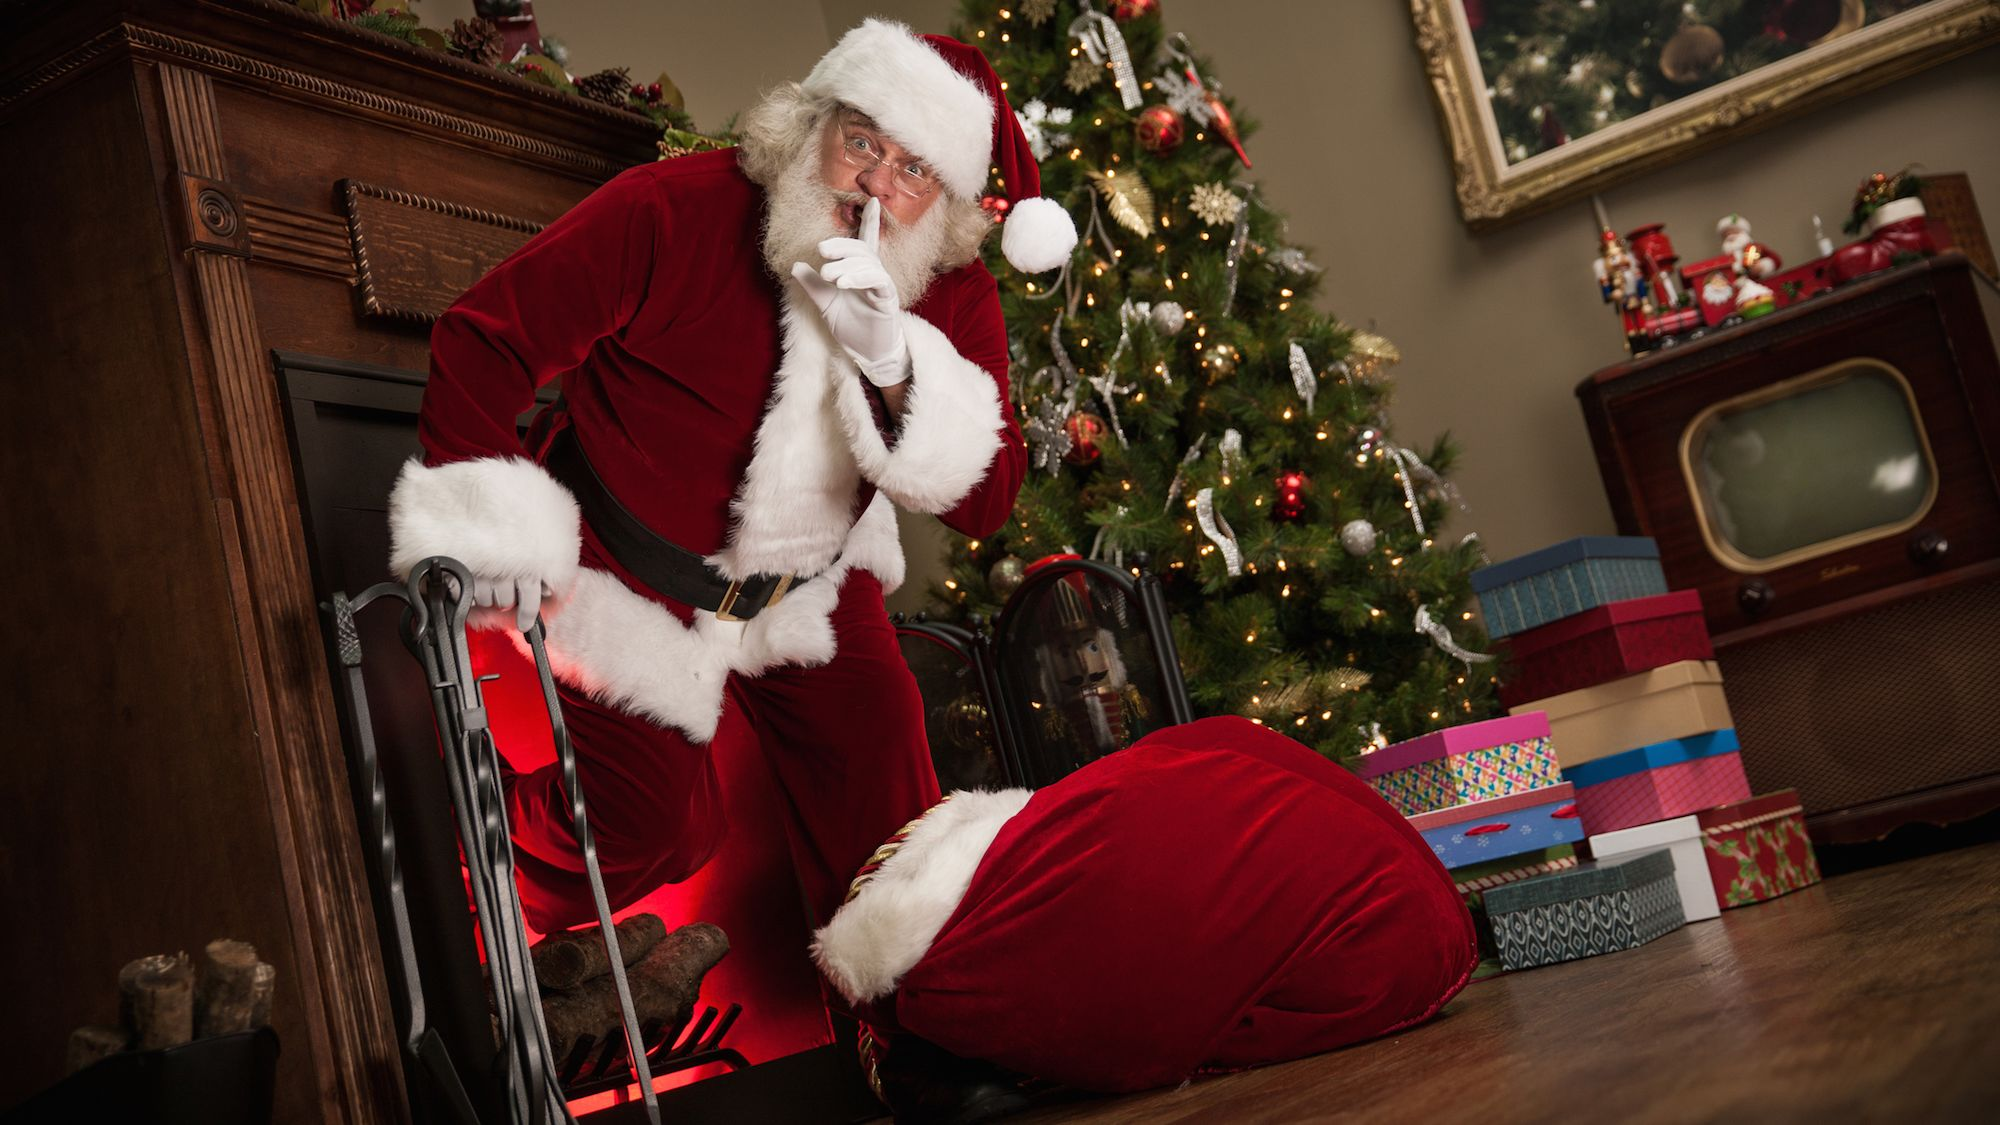 Why Does Santa Claus Come Down the Chimney? | Mental Floss